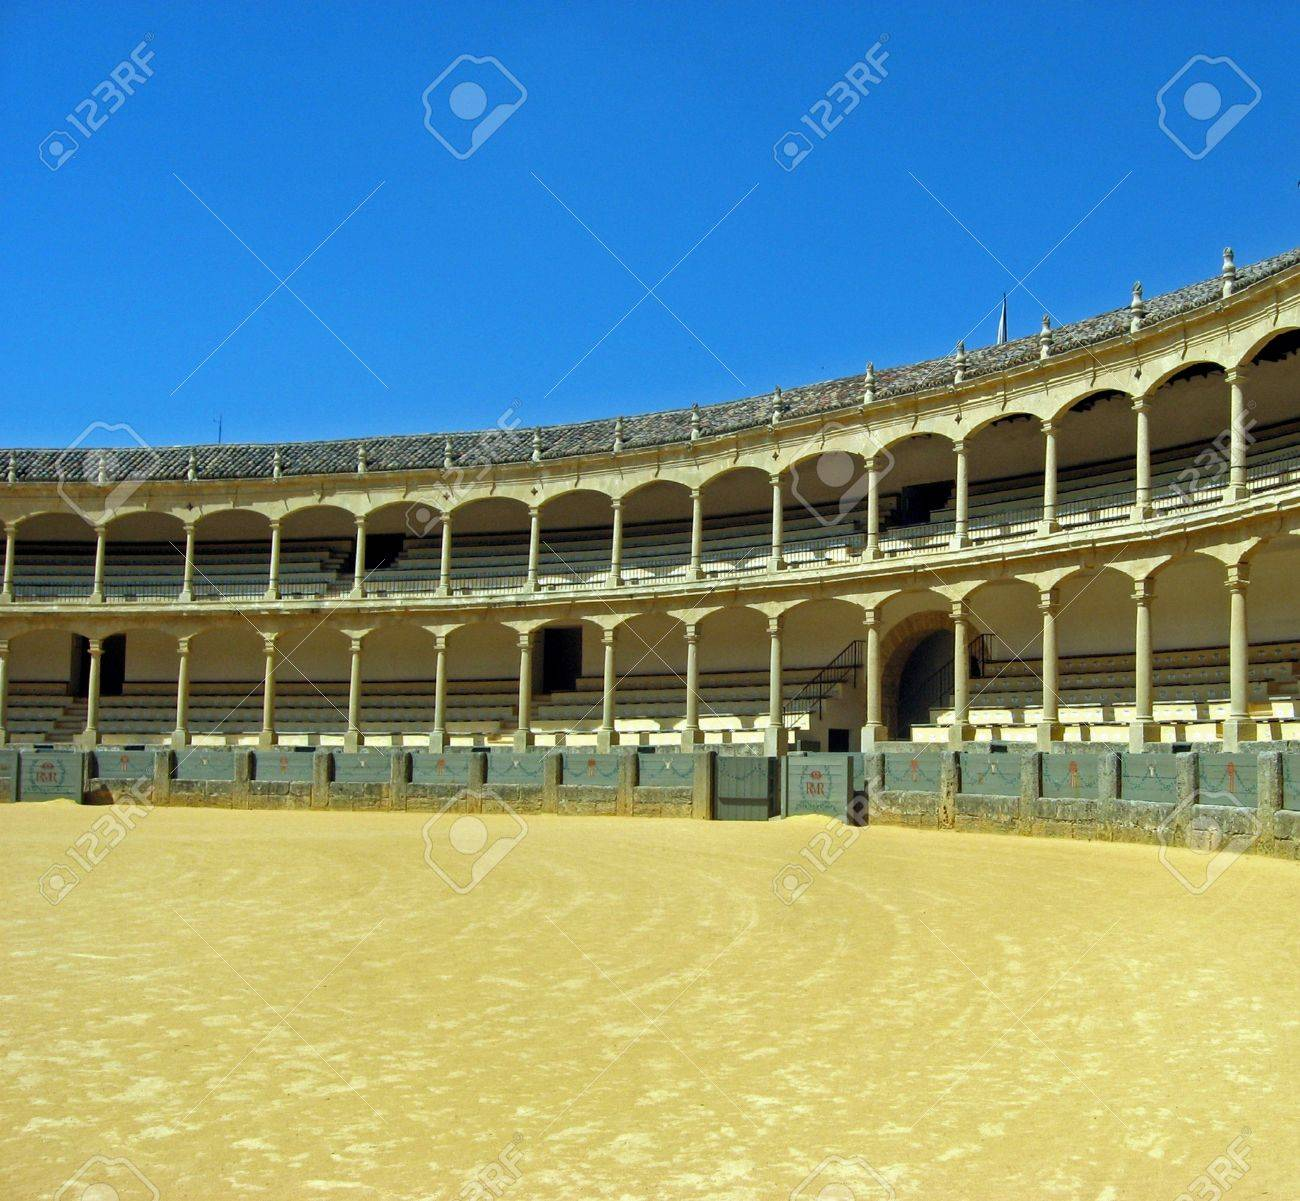 arena where bullfighting takes place in spain Stock Photo - 9084749